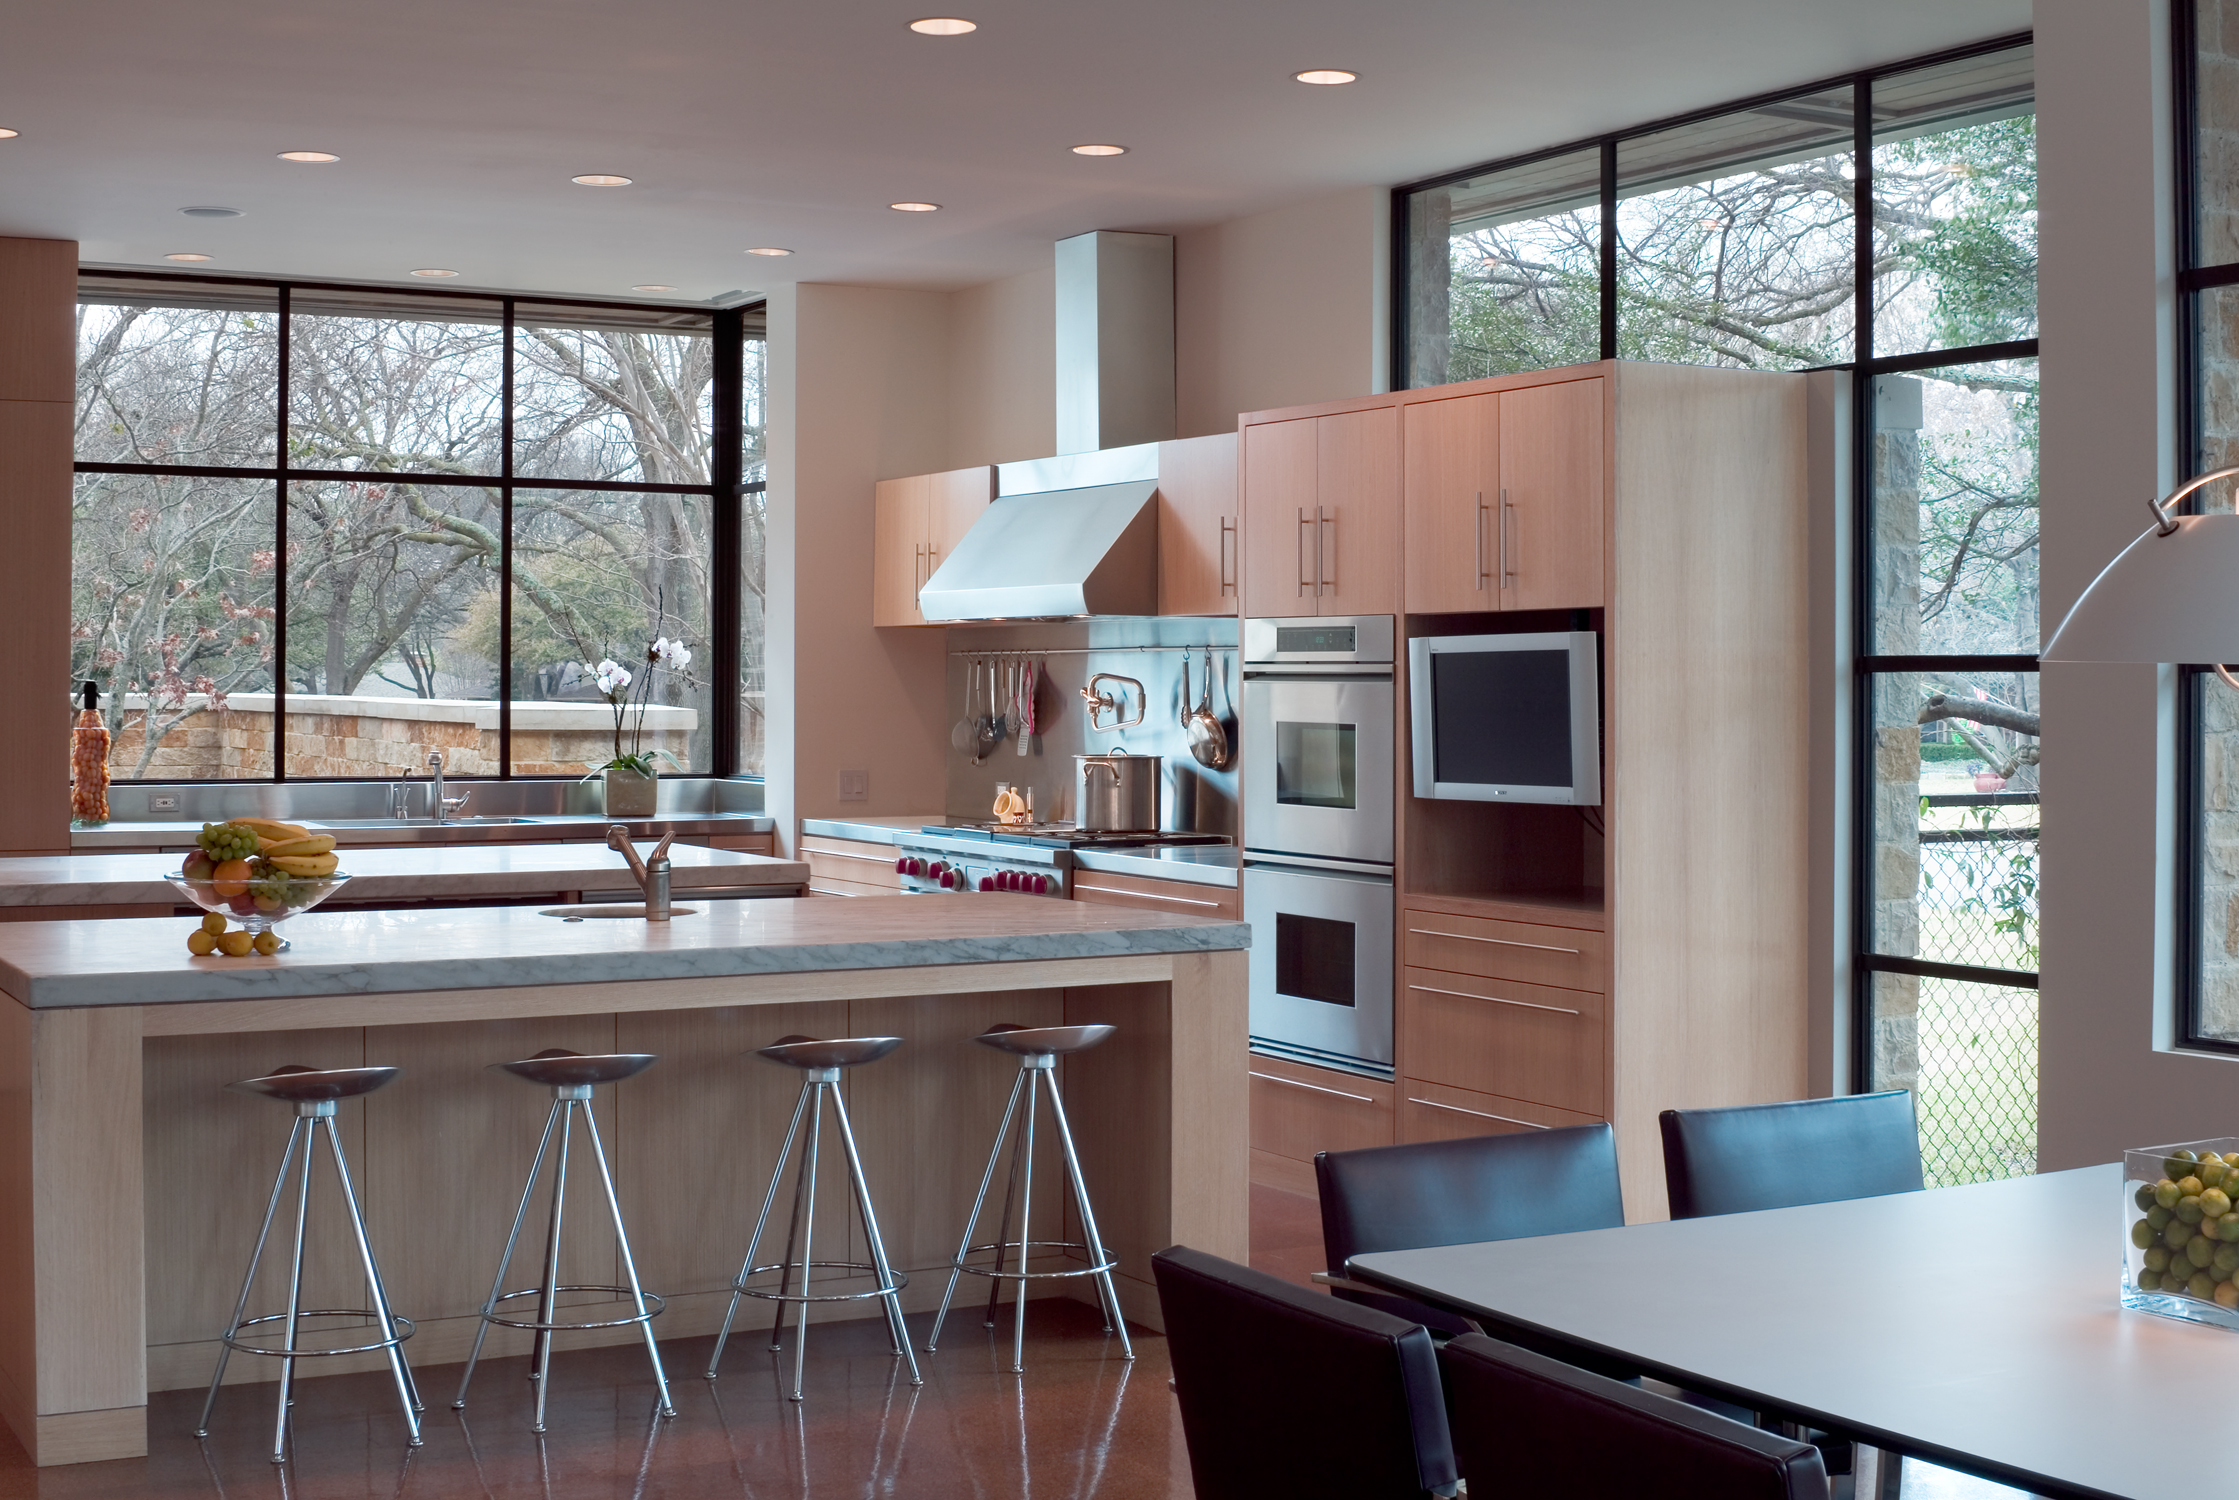 Top 10 modern kitchen design trends life of an architect - Modern kitchen island ...